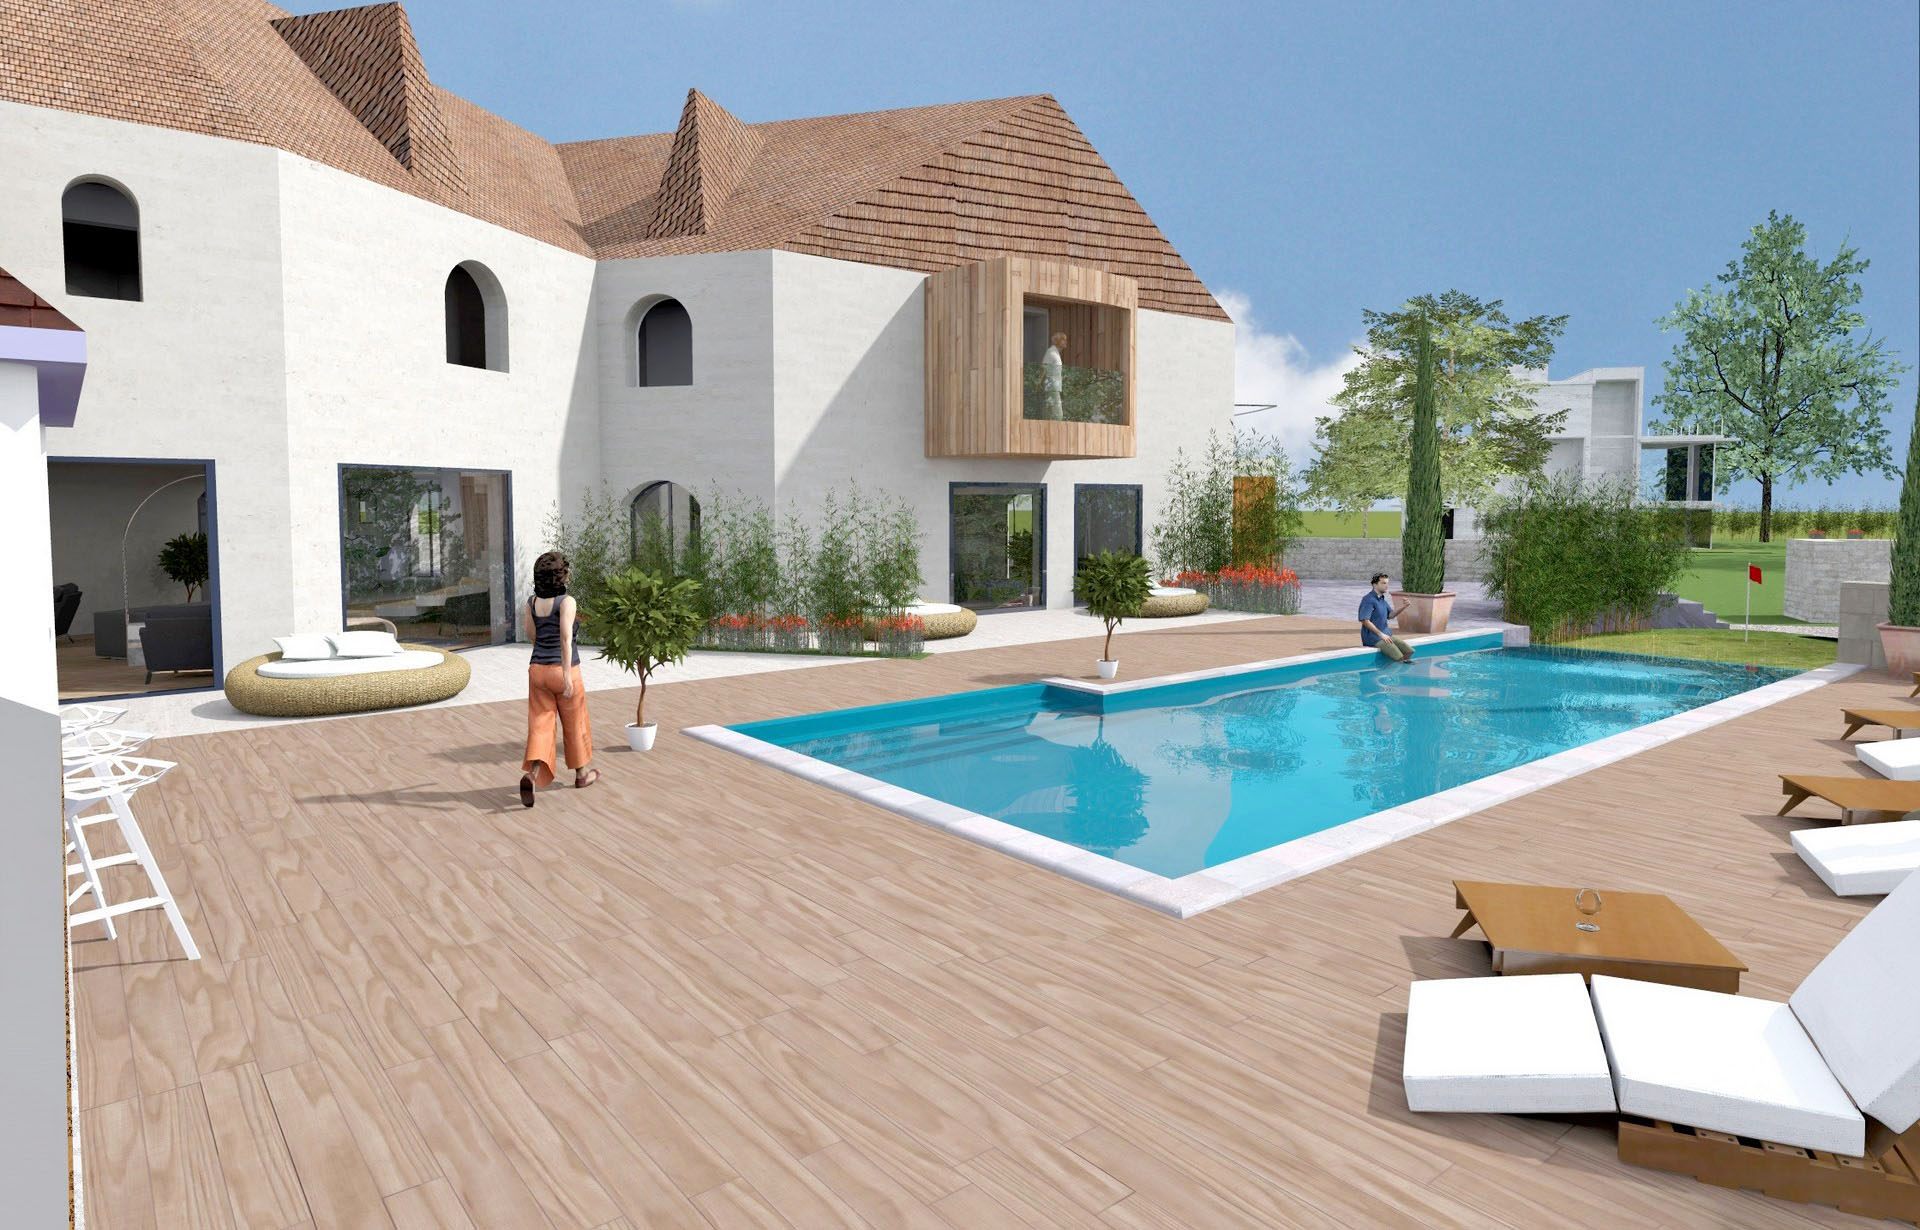 Piscine exterieur amenagement accueil design et mobilier for Amenagement exterieur piscine